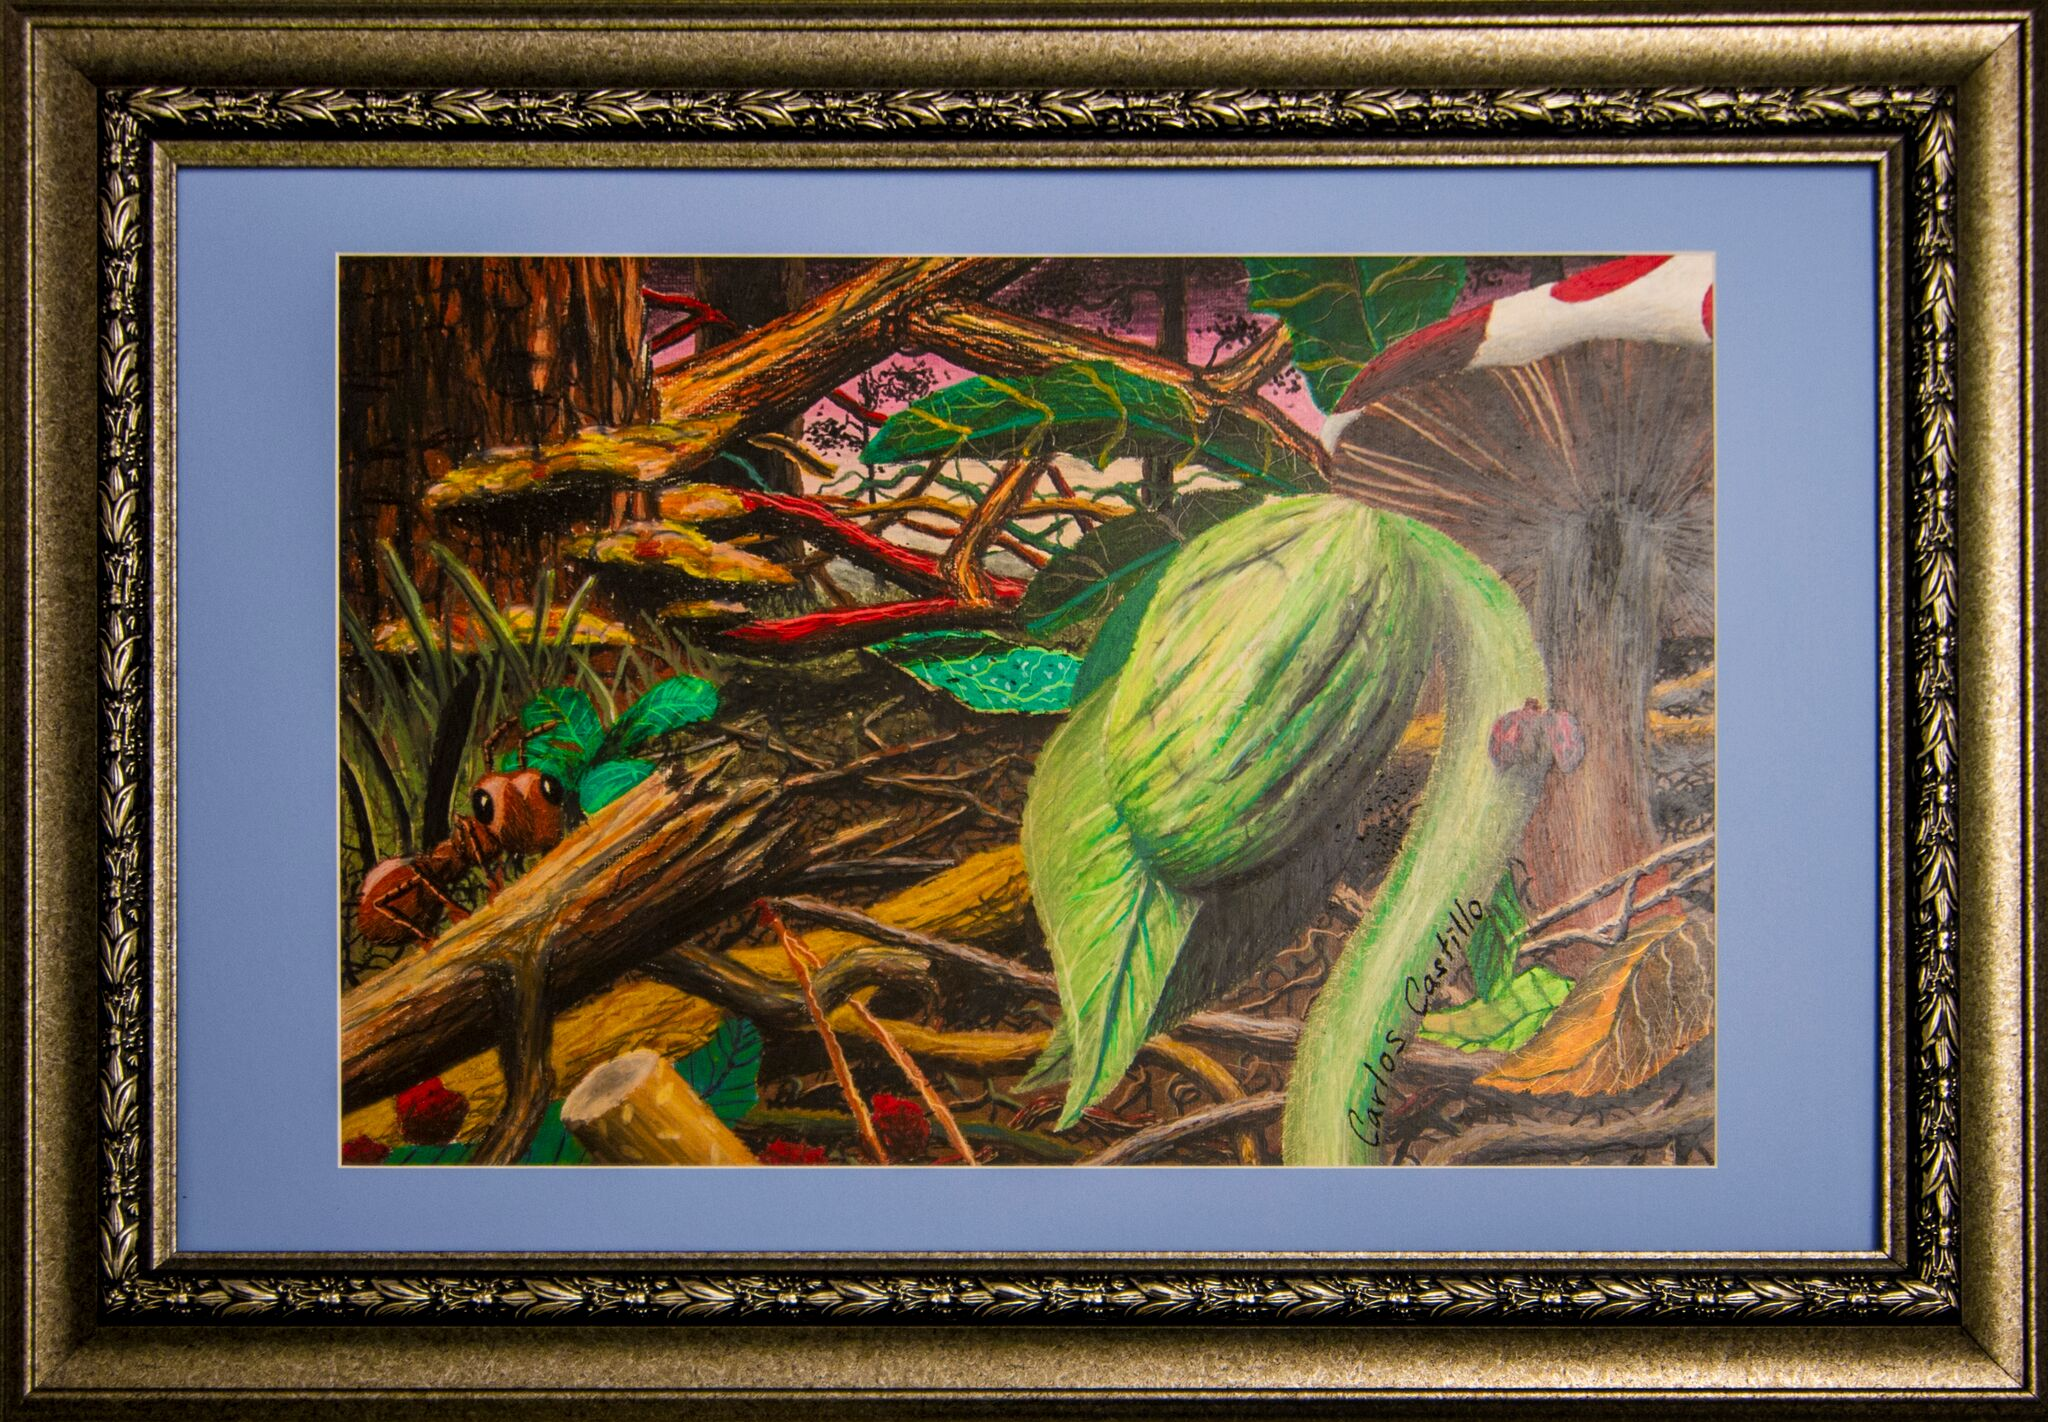 High Expectations by Carlos Castillo (1999) - $420